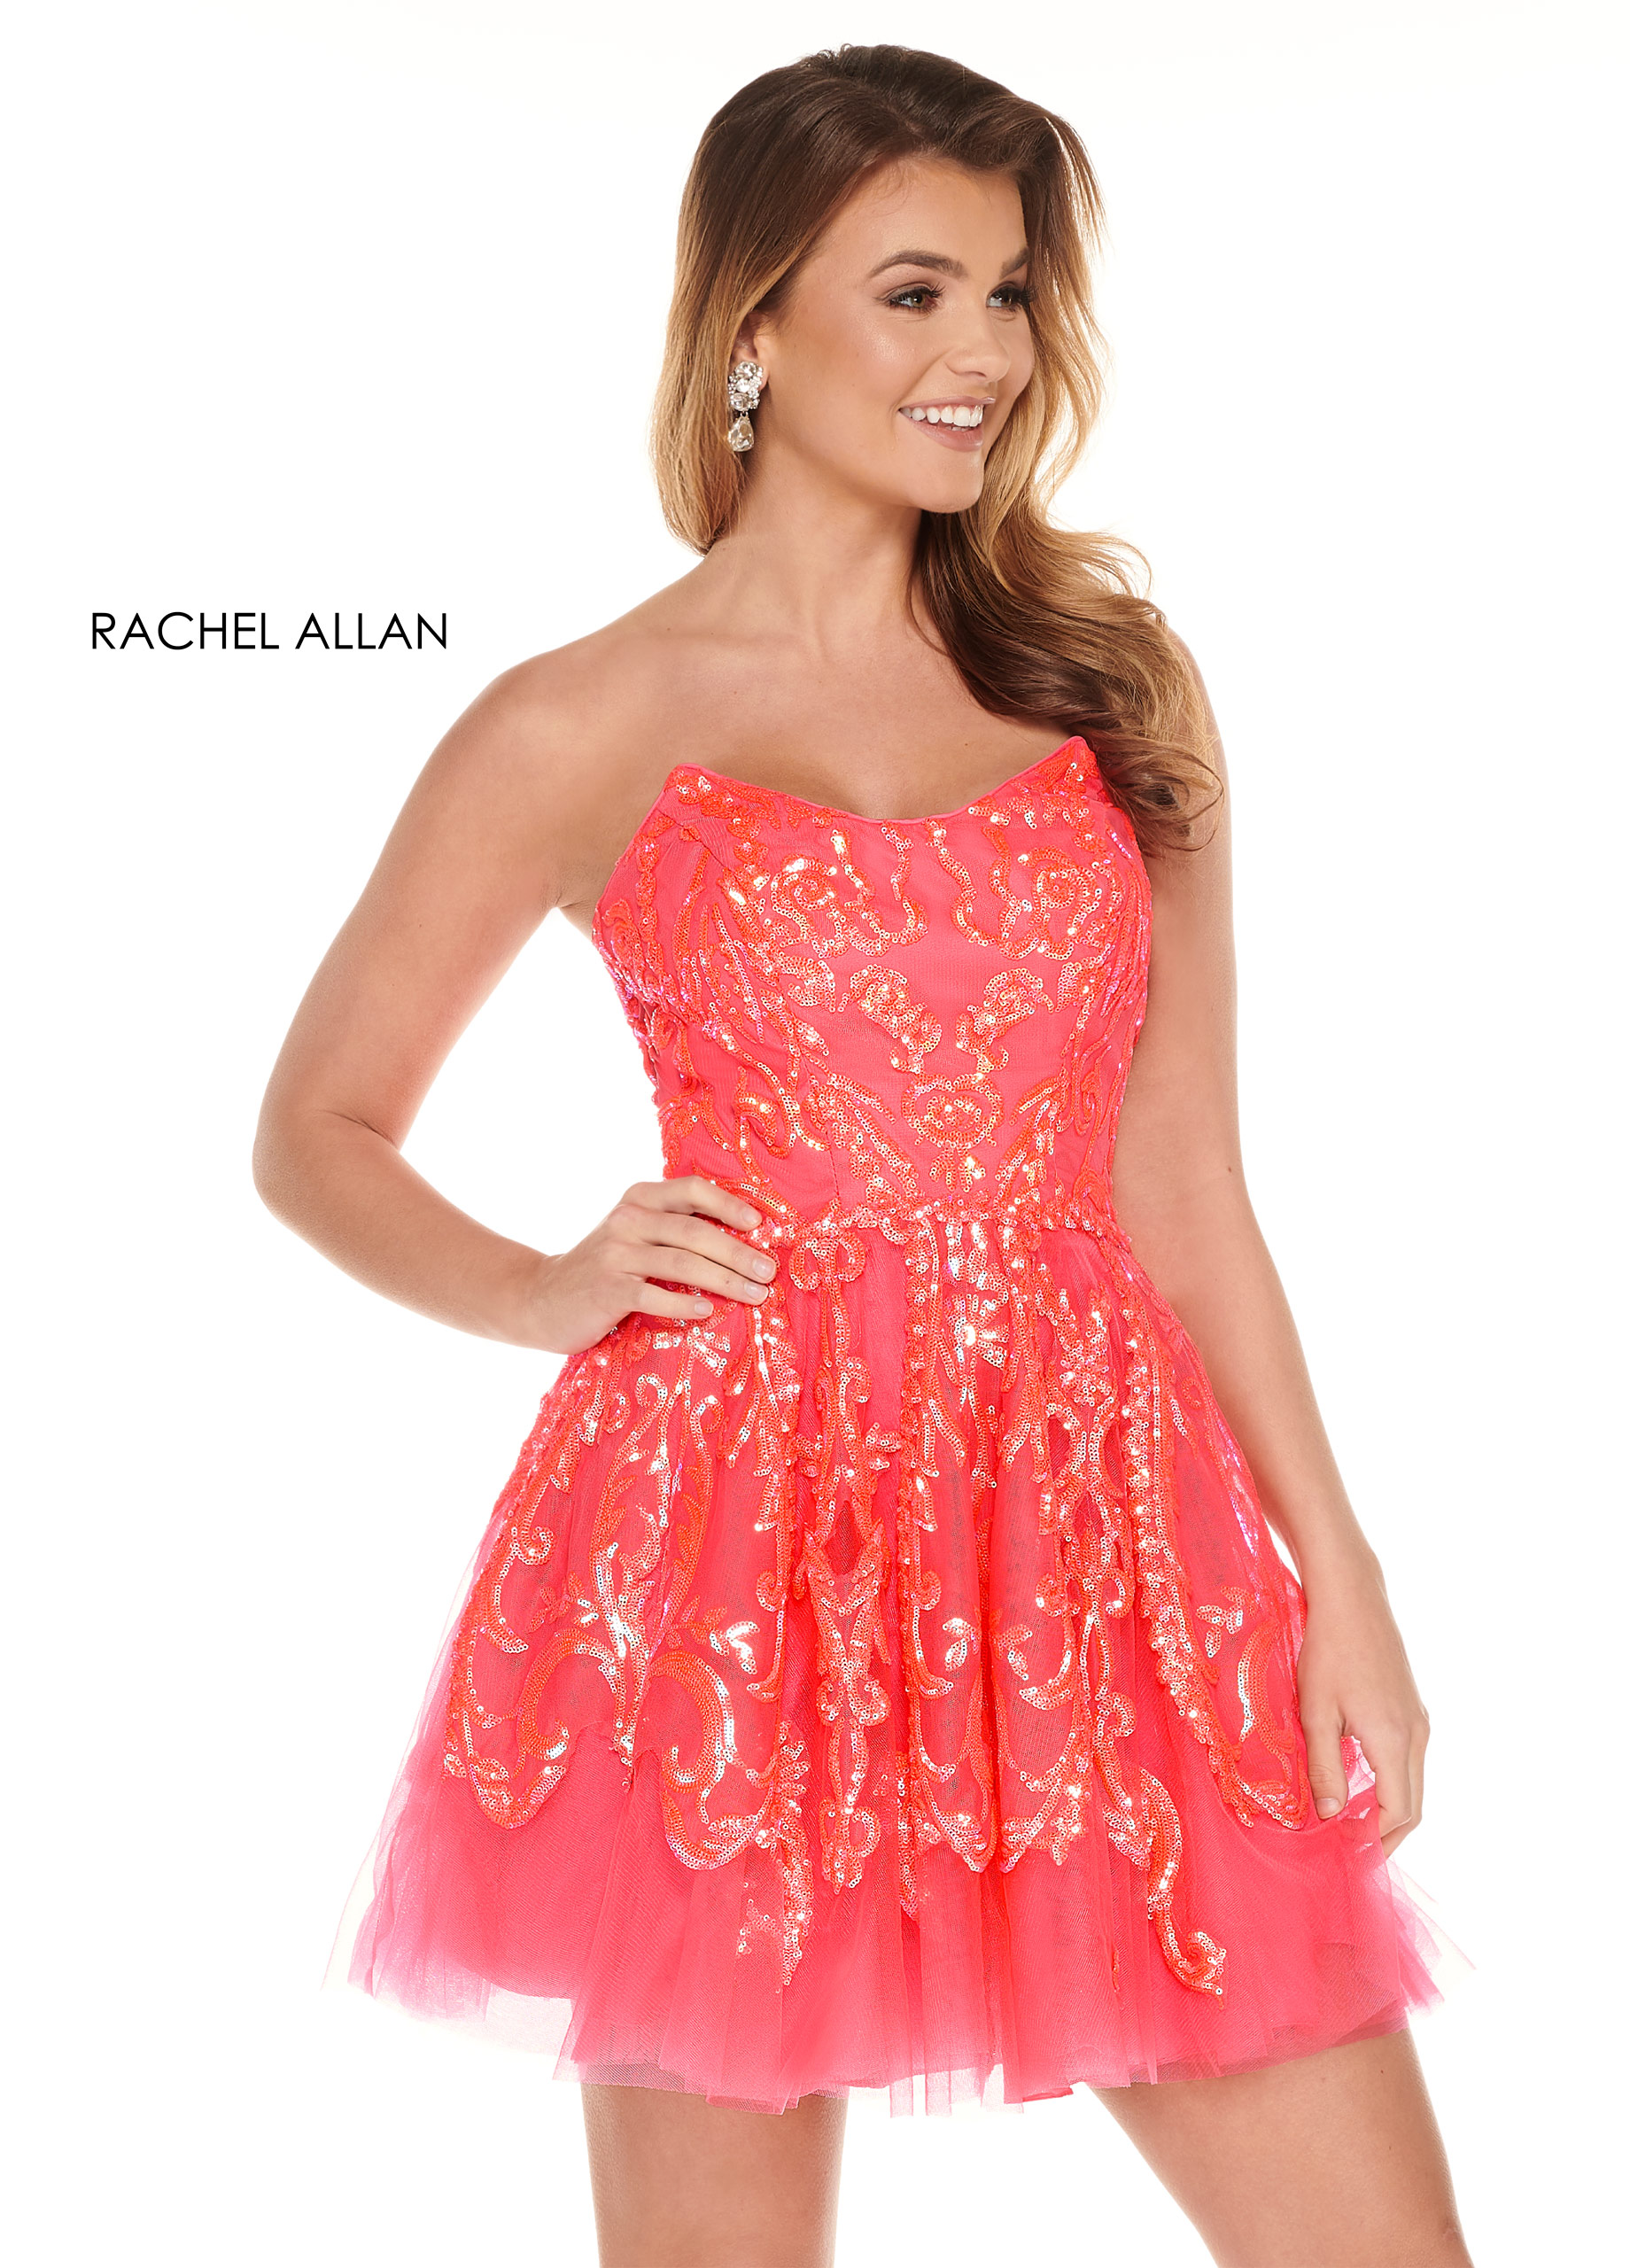 Strapless Full Skirt Mini Homecoming Dresses in Coral Color